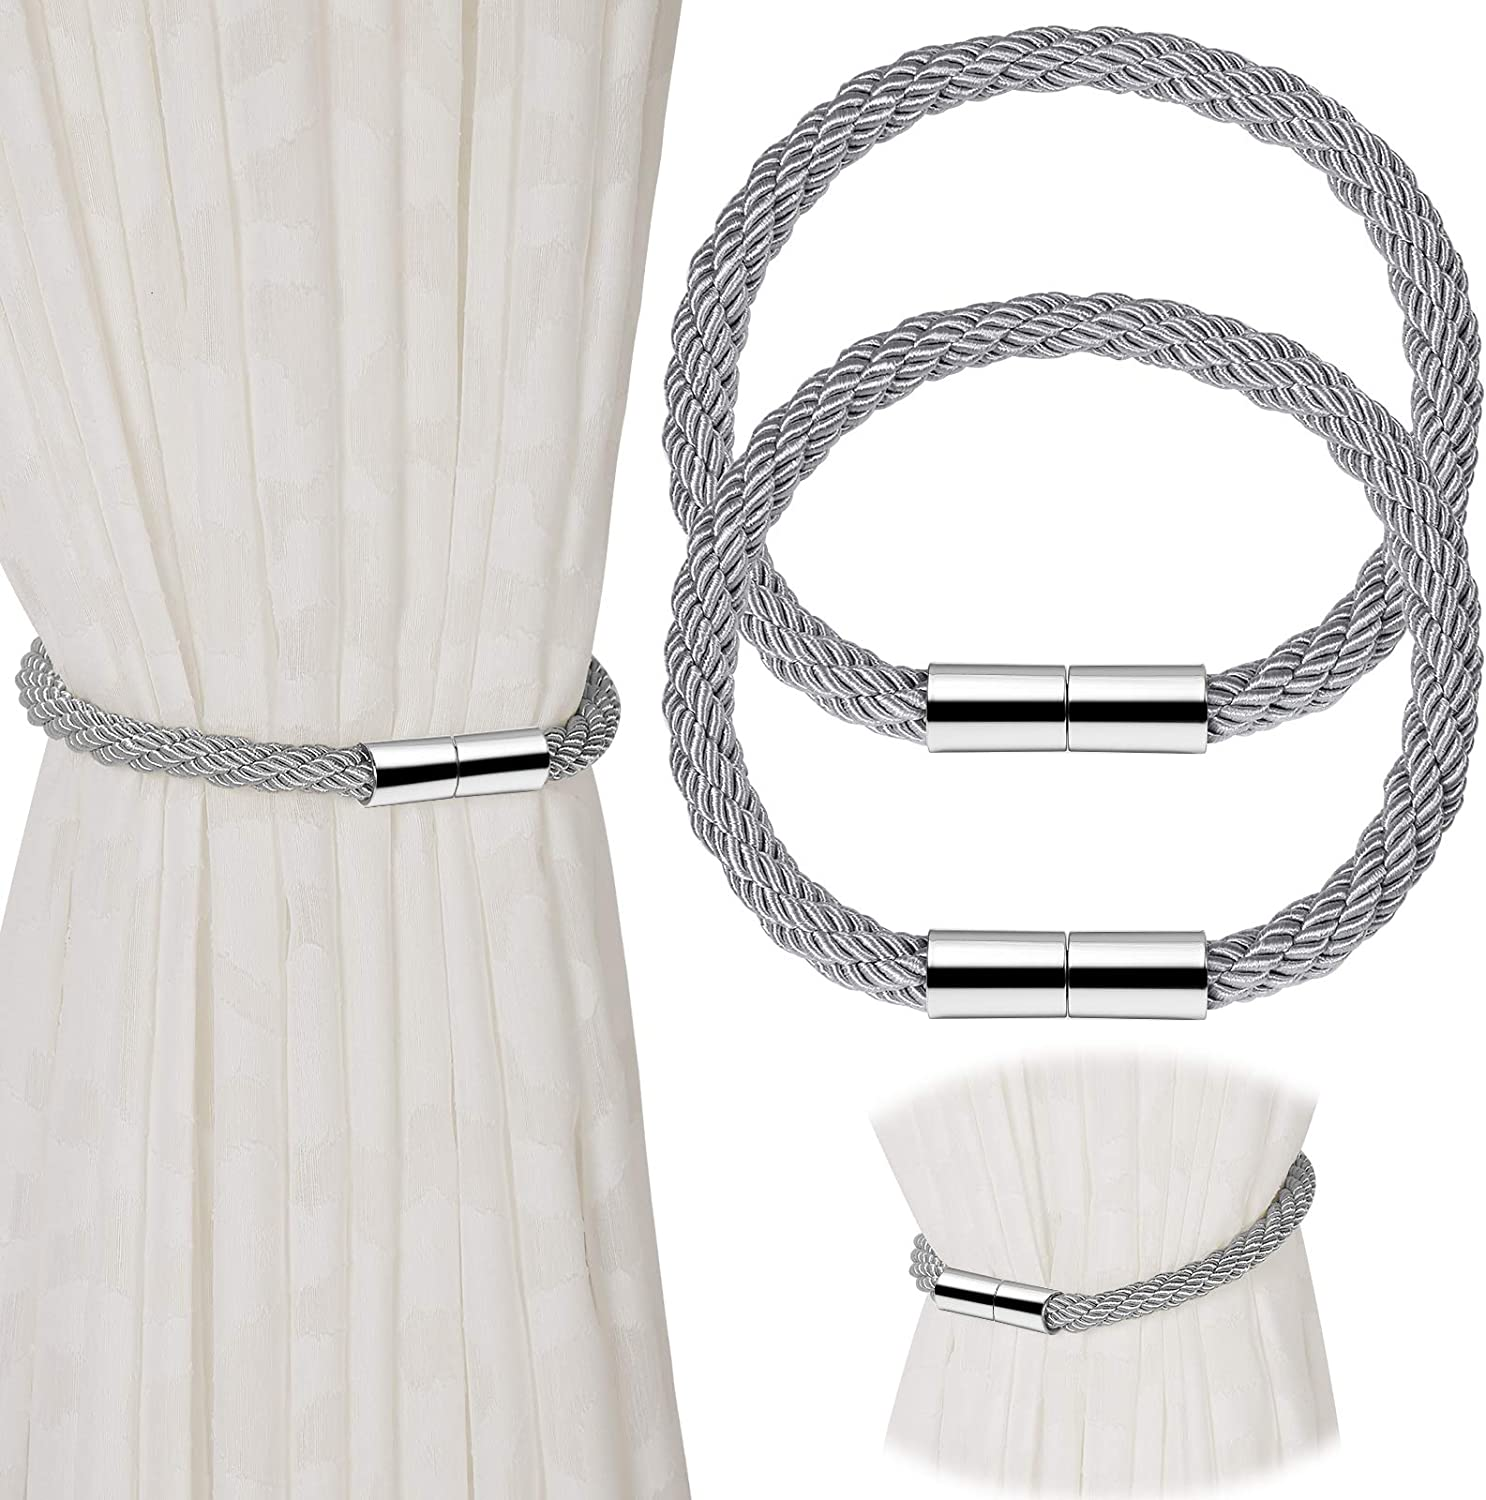 KWORK 2 Pieces Magnetic Curtain Tiebacks,22 Inch Long Decorative Curtain Hold-Backs for Home Office Window Decor (Gray)